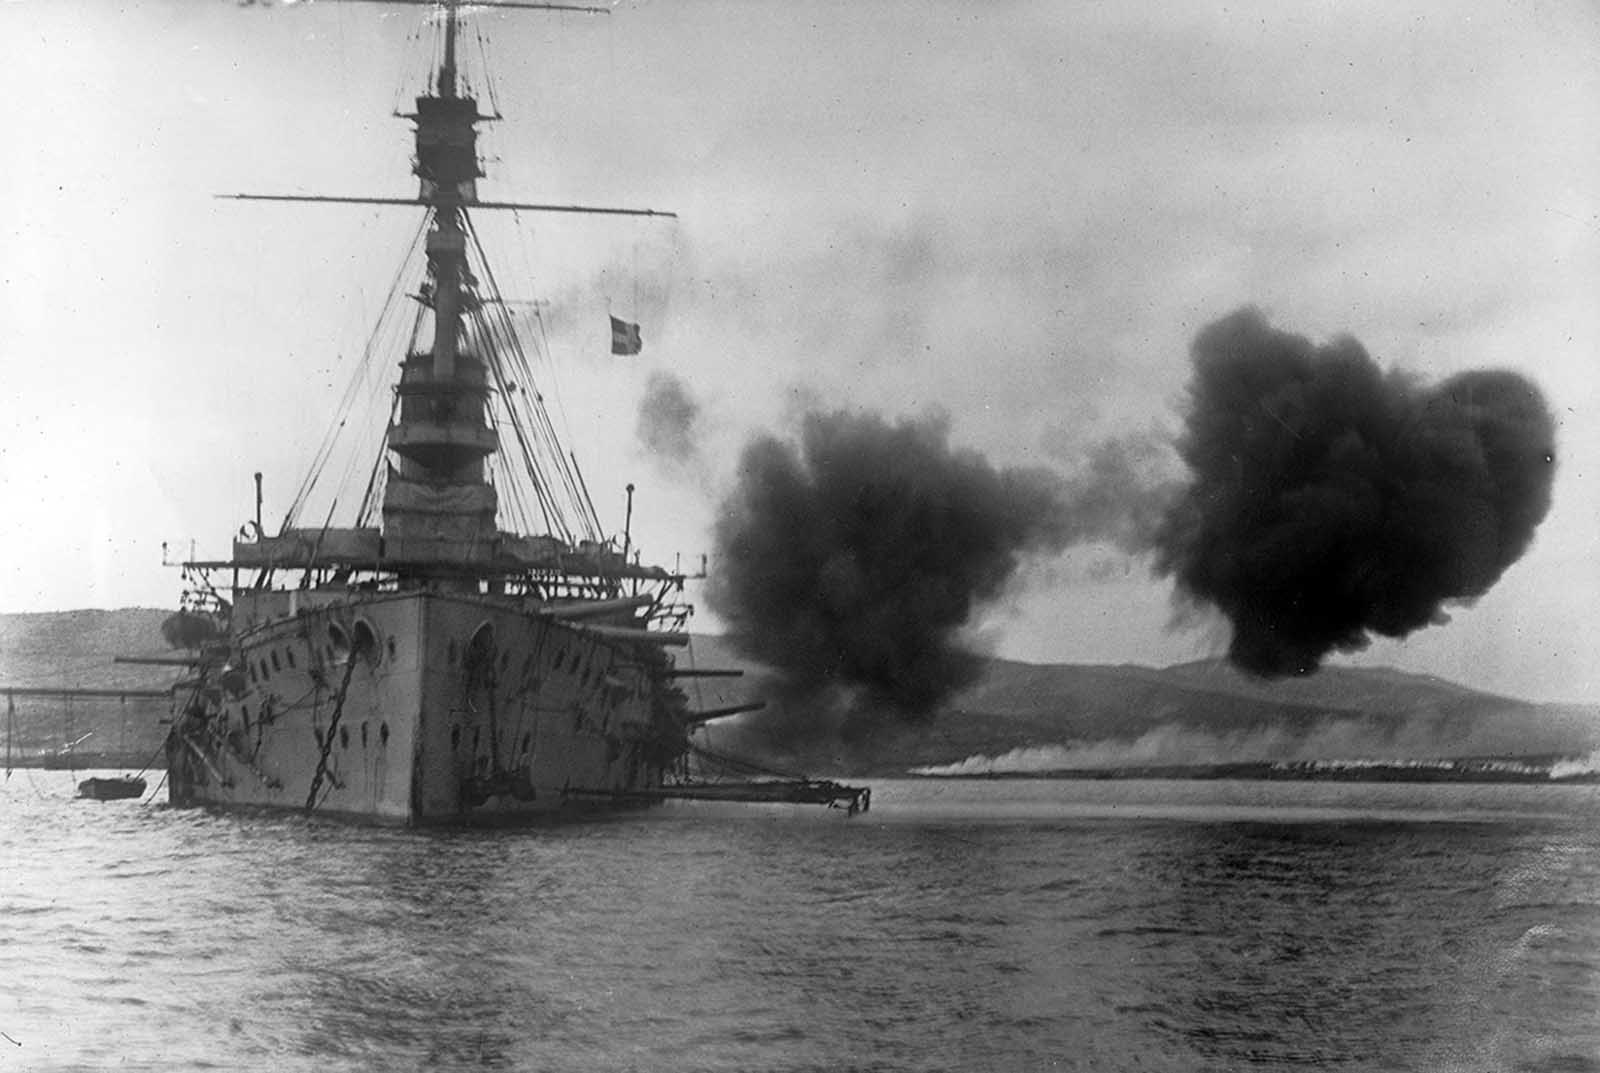 Evacuation of Suvla Bay, Dardanelles, Gallipoli Peninsula, on January 1916. The Gallipoli campaign was part of an Allied effort to capture the Ottoman capital of Constantinople (modern-day Istanbul). After eight bloody months on the peninsula, Allied troops withdrew in defeat, under cover of fire from the sea.